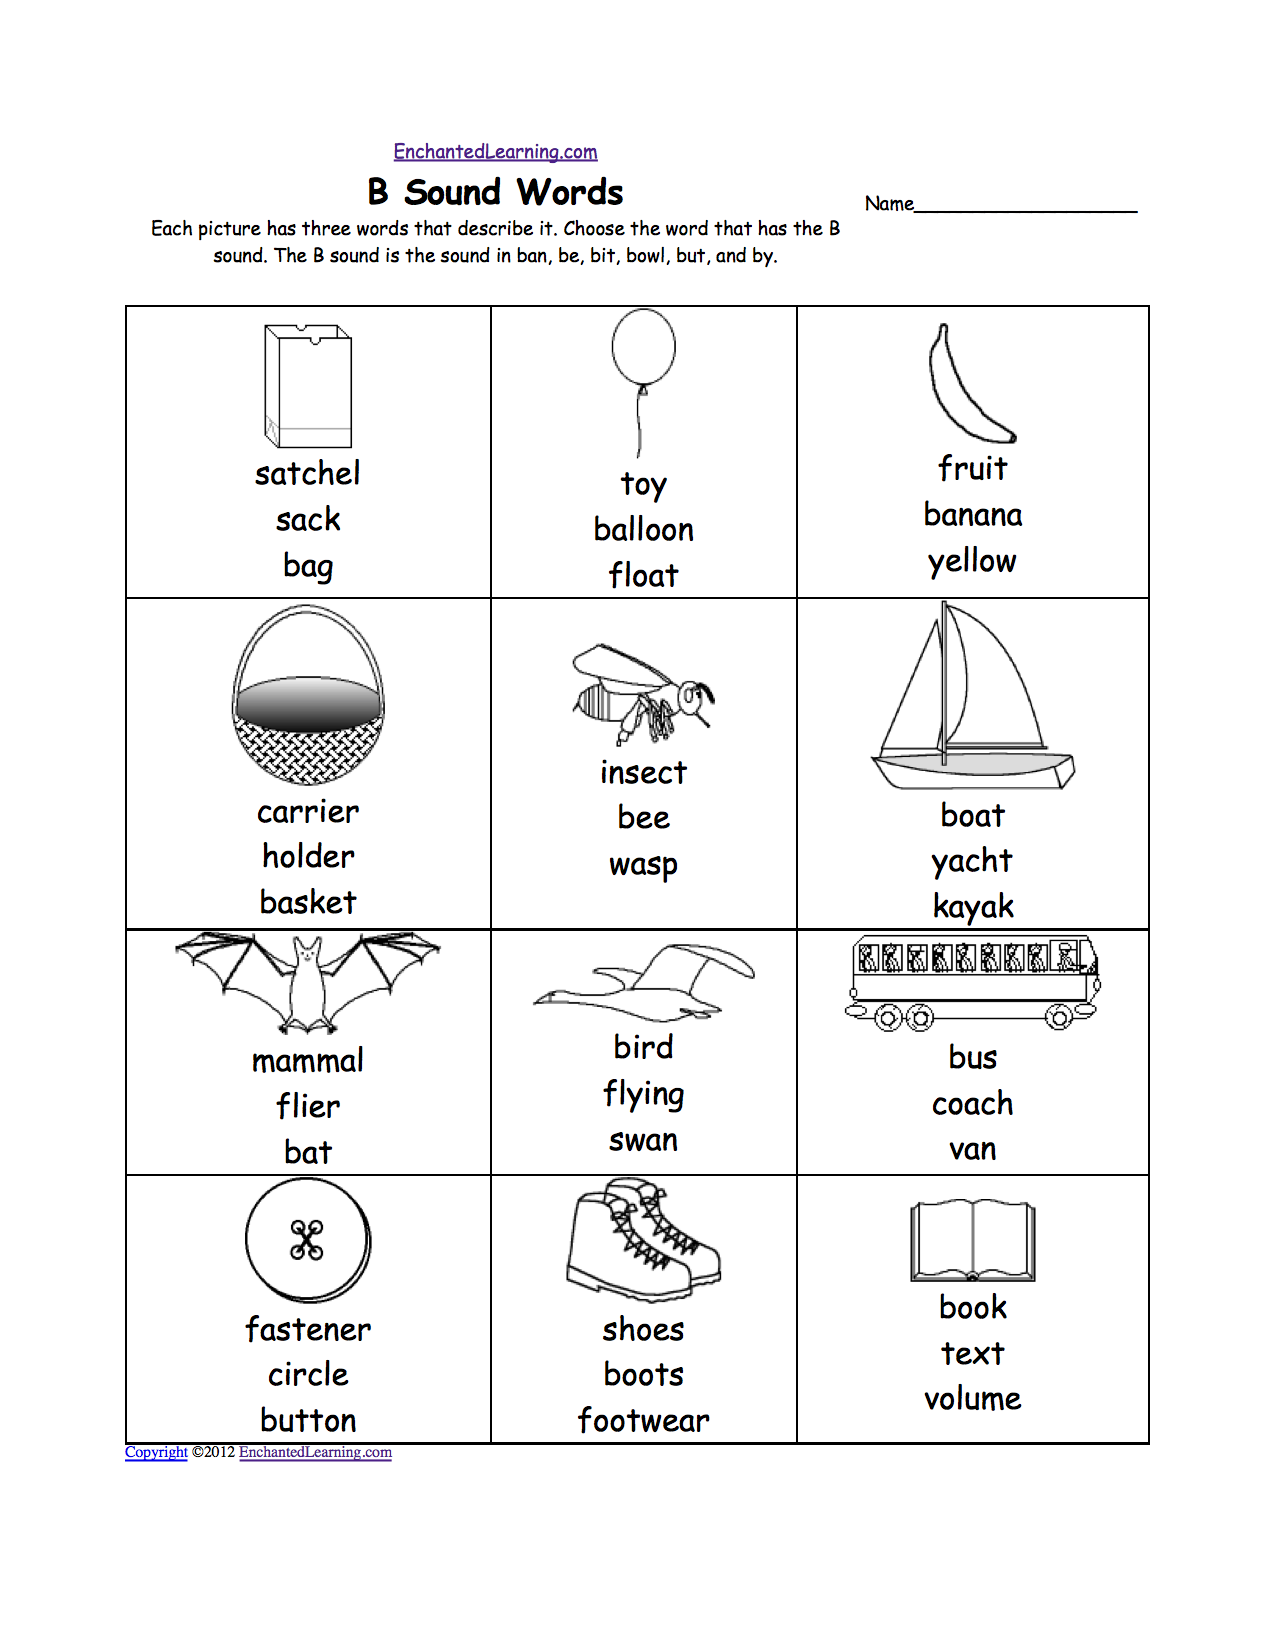 Weirdmailus  Terrific Phonics Worksheets Multiple Choice Worksheets To Print  With Magnificent Quotbquot Sound Phonics Worksheet Multiple Choice Each Picture Has Three Words That Describe It Choose The Word That Has A Quotbquot Sound The Quotbquot Sound Is The Sound  With Lovely Multiplacation Worksheets Also Positive And Negative Worksheets In Addition Letter Sounds Worksheet And How To Read A Topographic Map Worksheet As Well As Bus Safety Worksheets Additionally Nd Grade Reading Comprehension Worksheets Free From Enchantedlearningcom With Weirdmailus  Magnificent Phonics Worksheets Multiple Choice Worksheets To Print  With Lovely Quotbquot Sound Phonics Worksheet Multiple Choice Each Picture Has Three Words That Describe It Choose The Word That Has A Quotbquot Sound The Quotbquot Sound Is The Sound  And Terrific Multiplacation Worksheets Also Positive And Negative Worksheets In Addition Letter Sounds Worksheet From Enchantedlearningcom